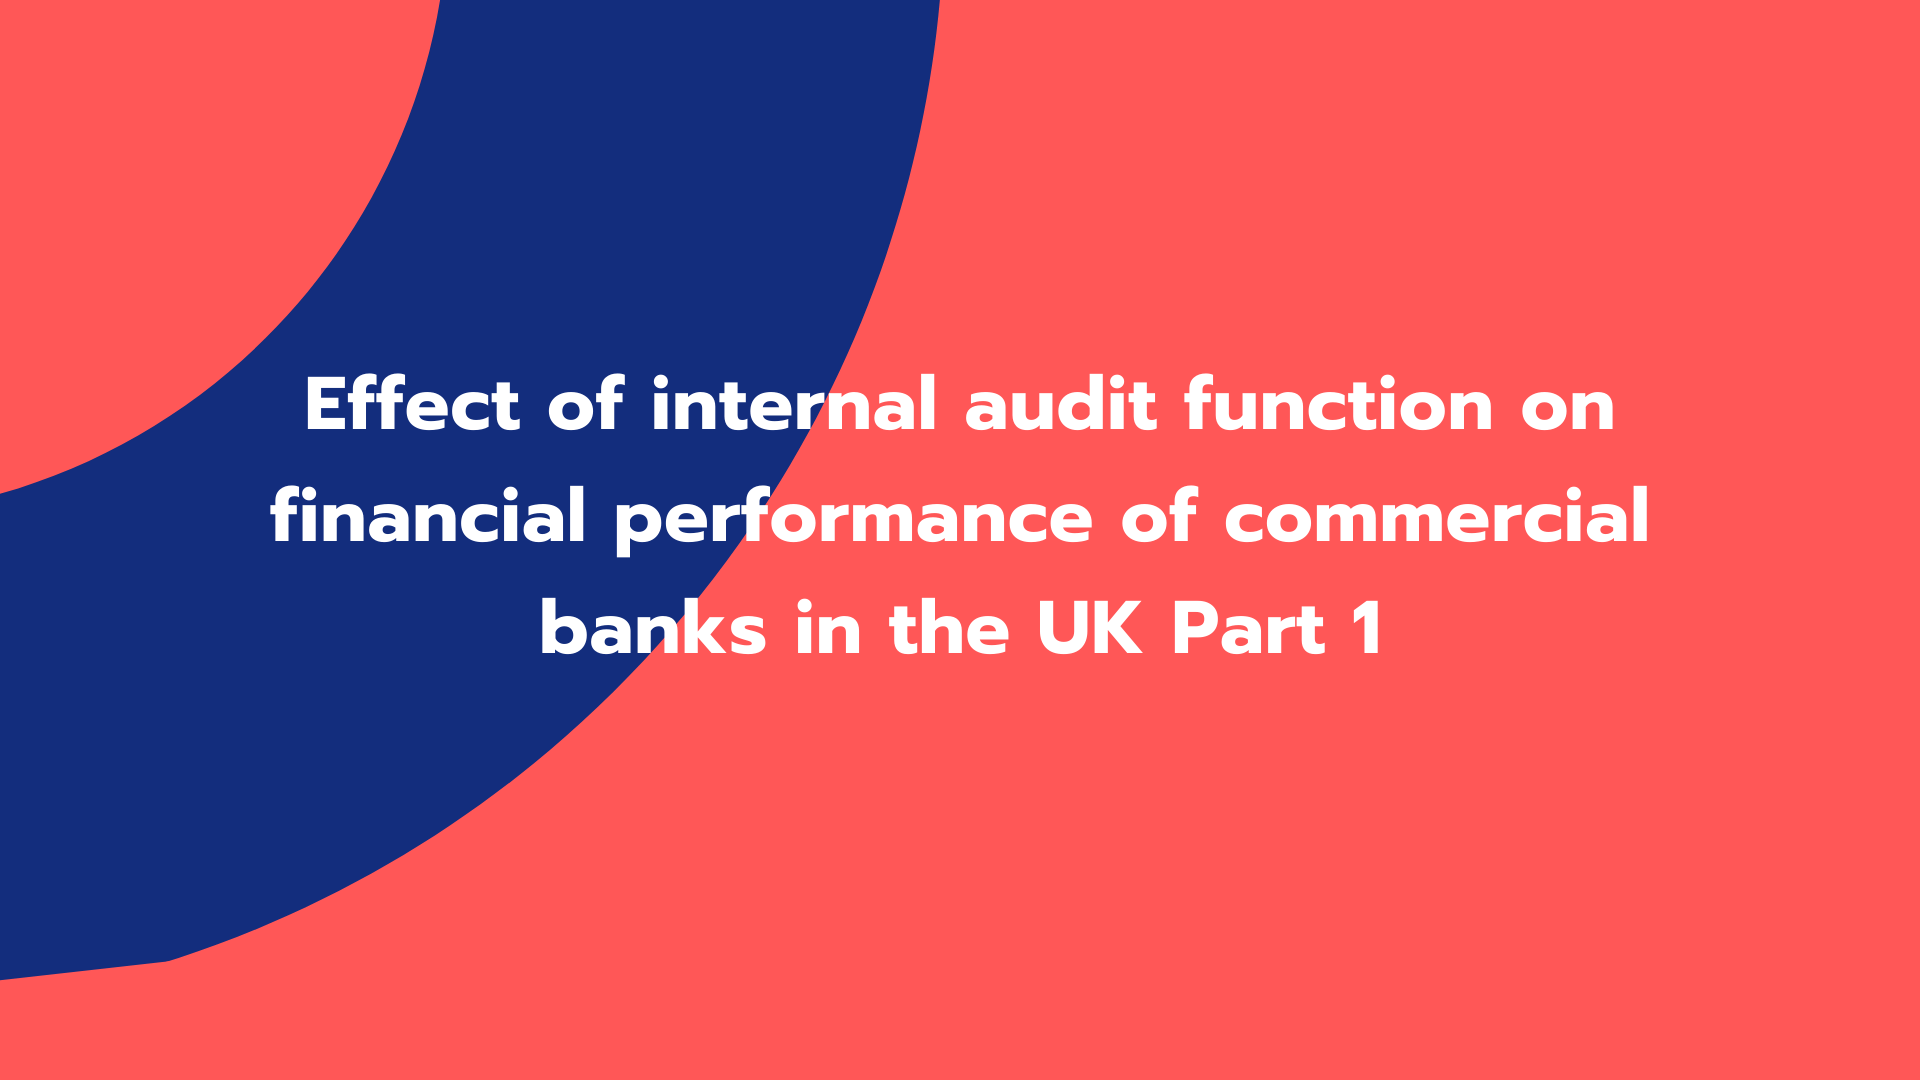 Effect of internal audit function on financial performance of commercial banks in the UK Part 1